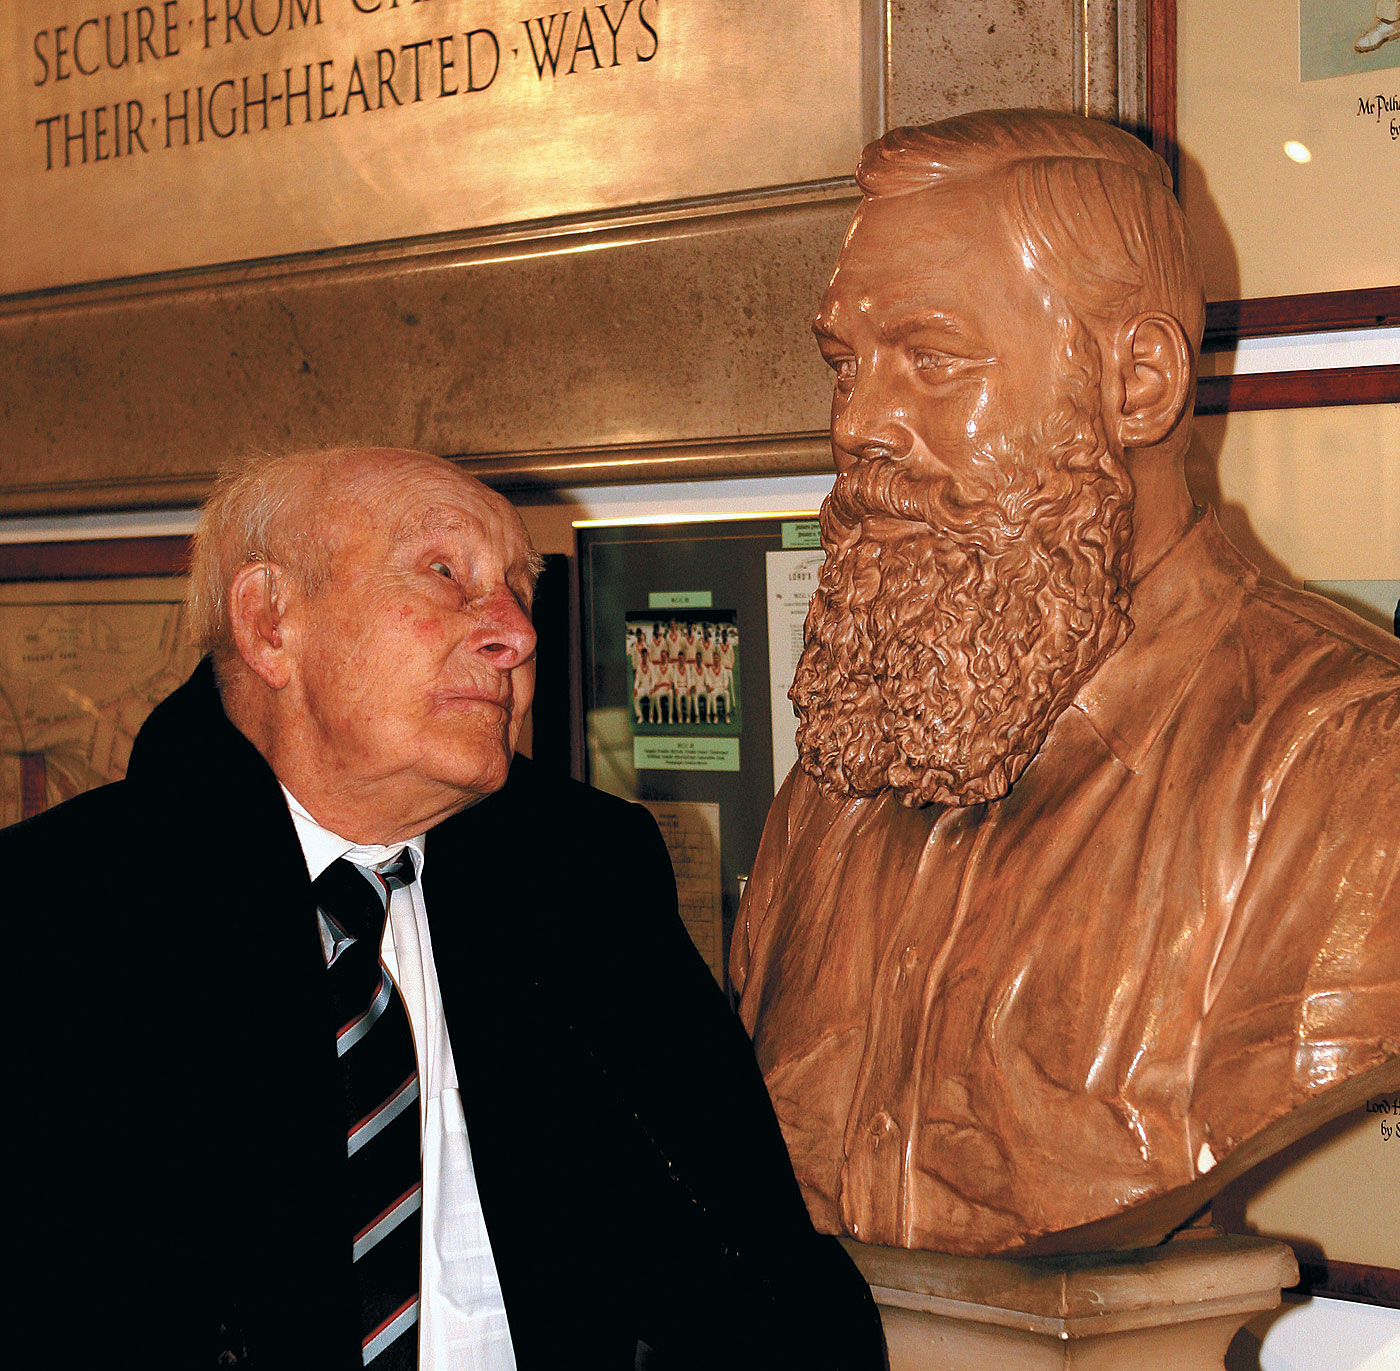 The Doctor's oldest patient: Henry Allingham, who watched WG Grace play, poses with a bust of Grace at the MCC in 2007